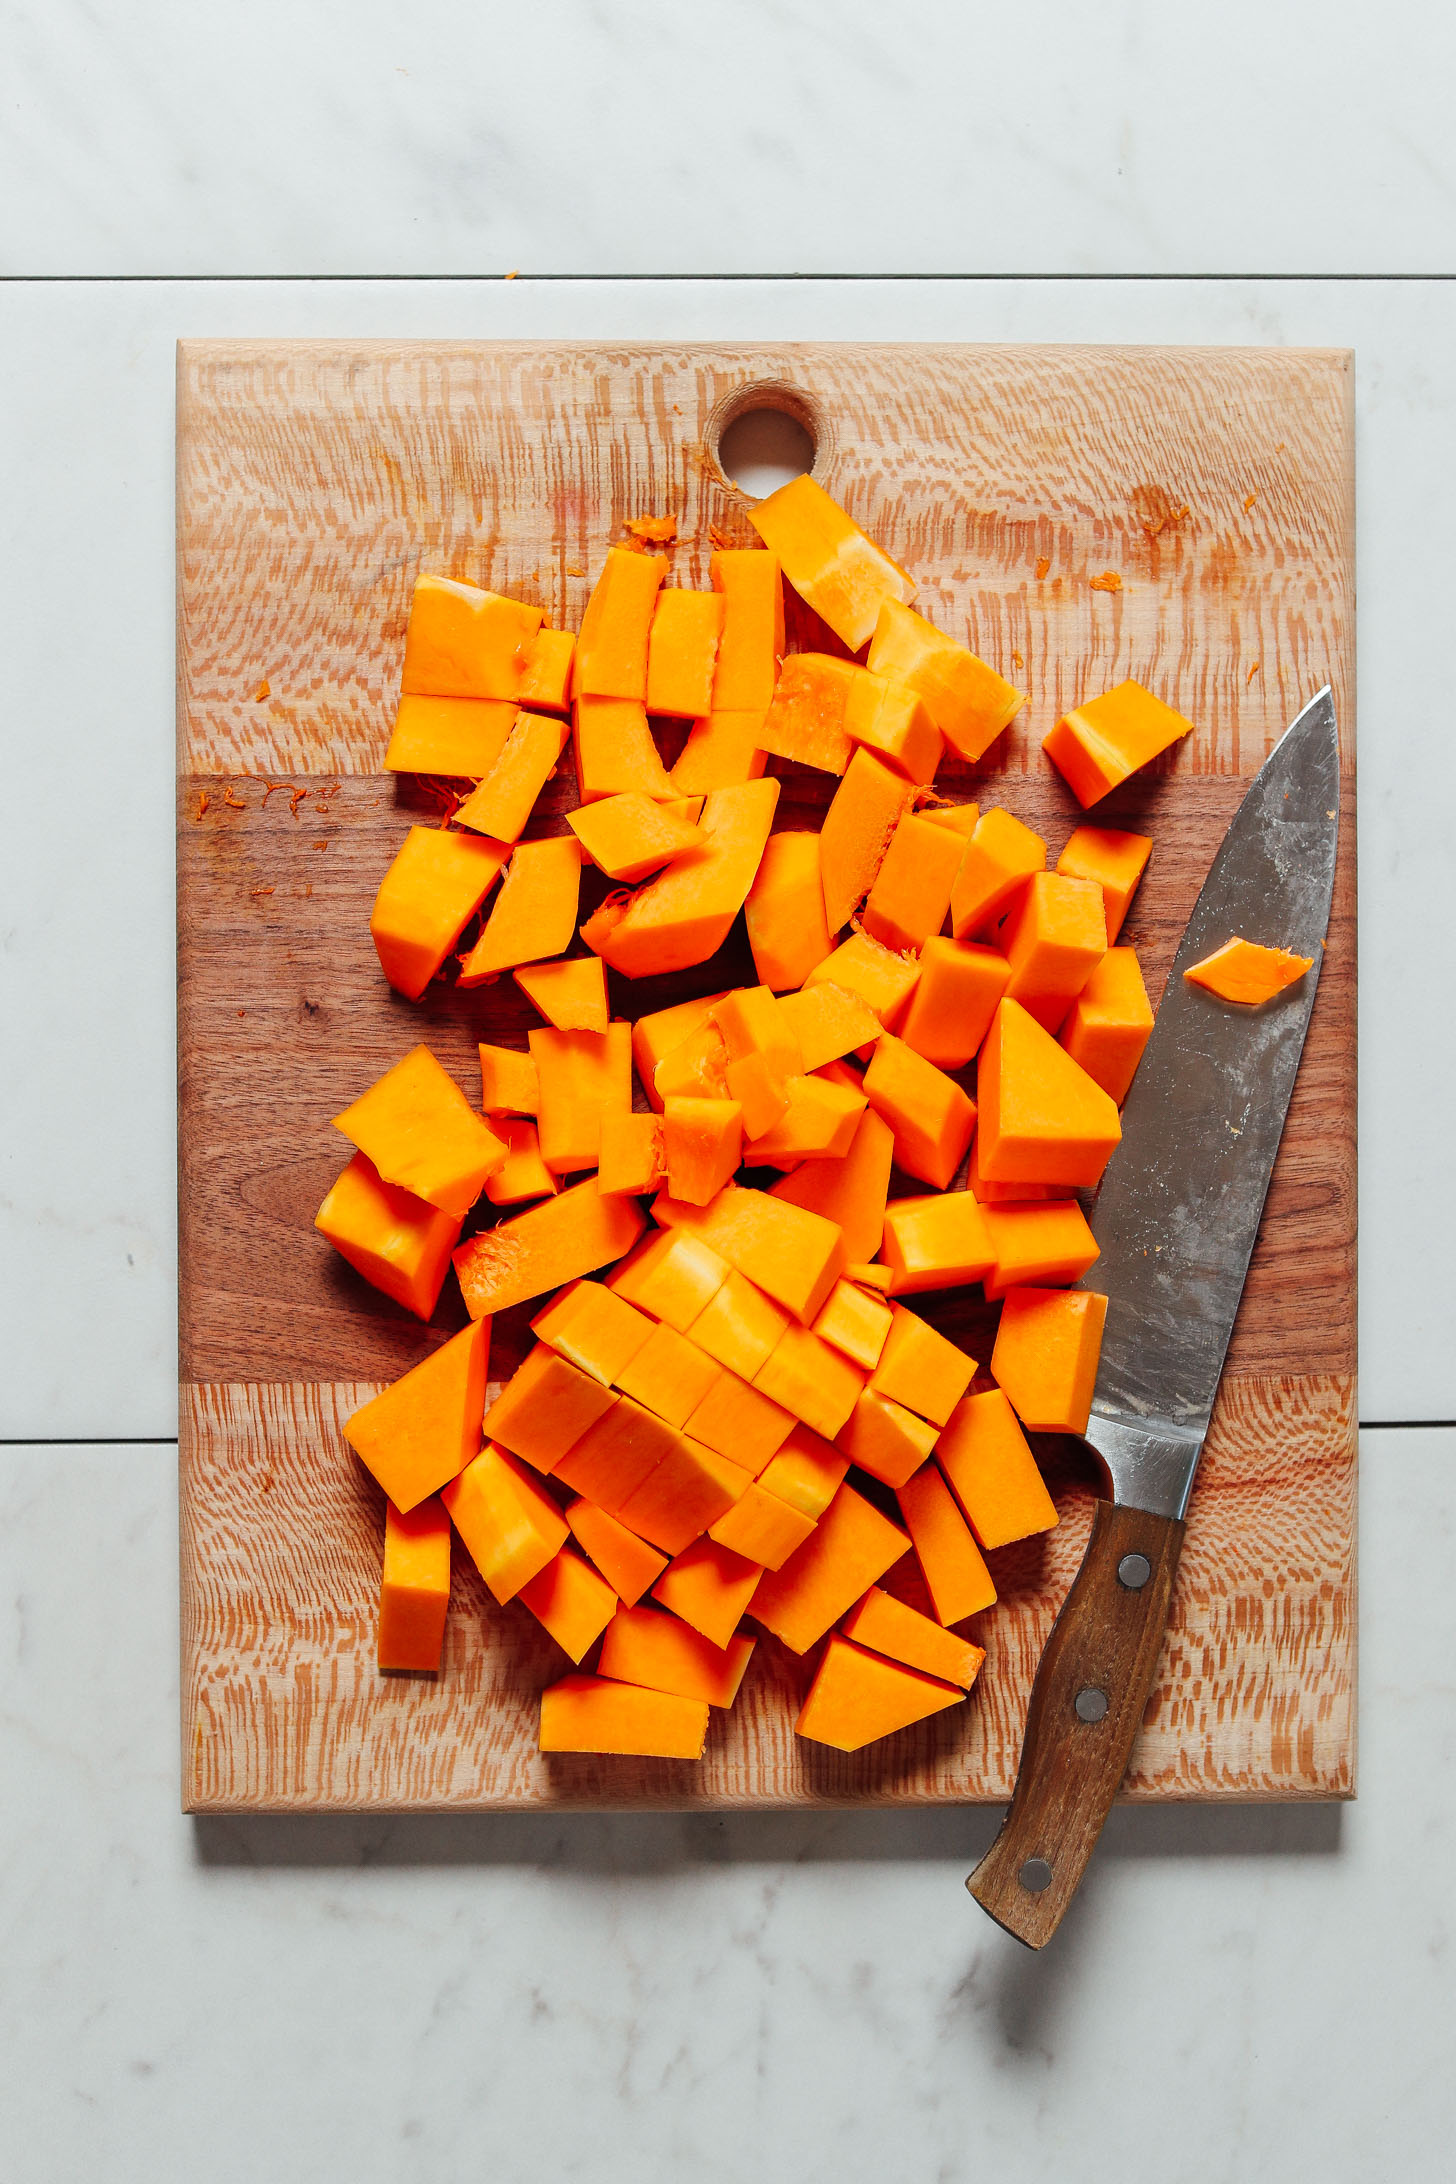 Cutting board filled with cubed butternut squash for our How to Cut Butternut Squash Tutorial